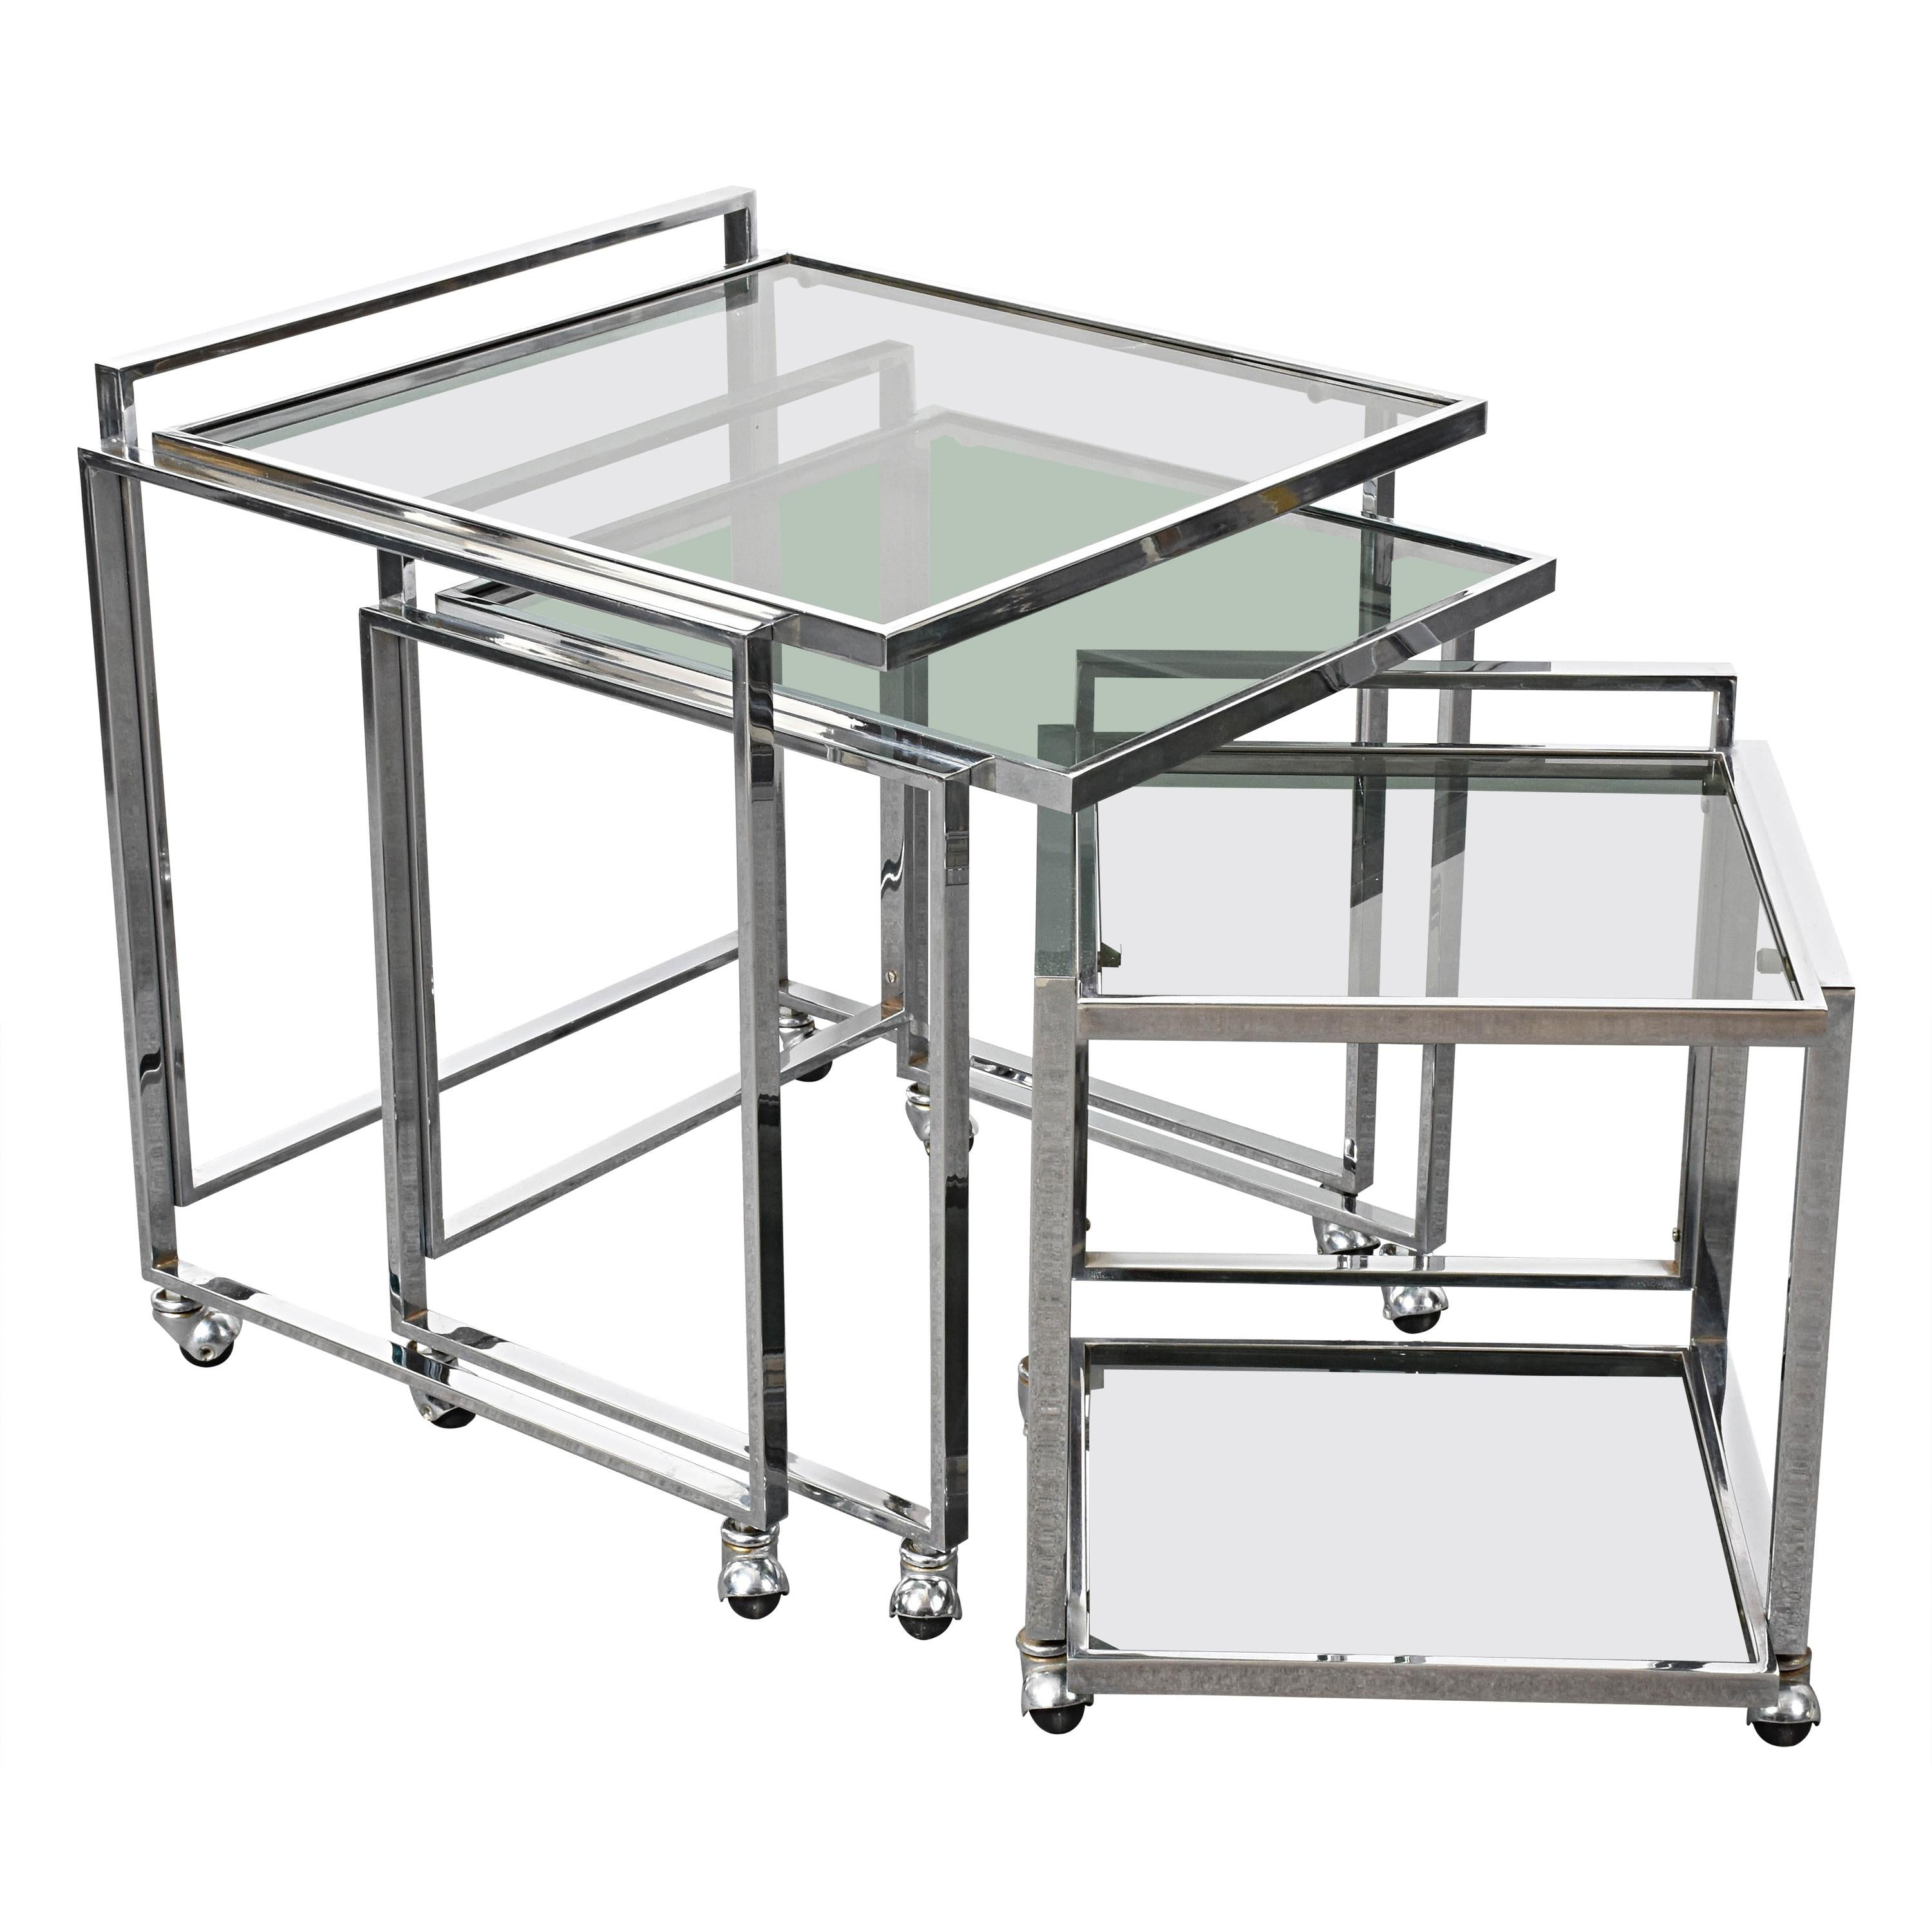 Mid-Century Modern Italian Chrome and Smoked Glass Nesting Tables, 1970s